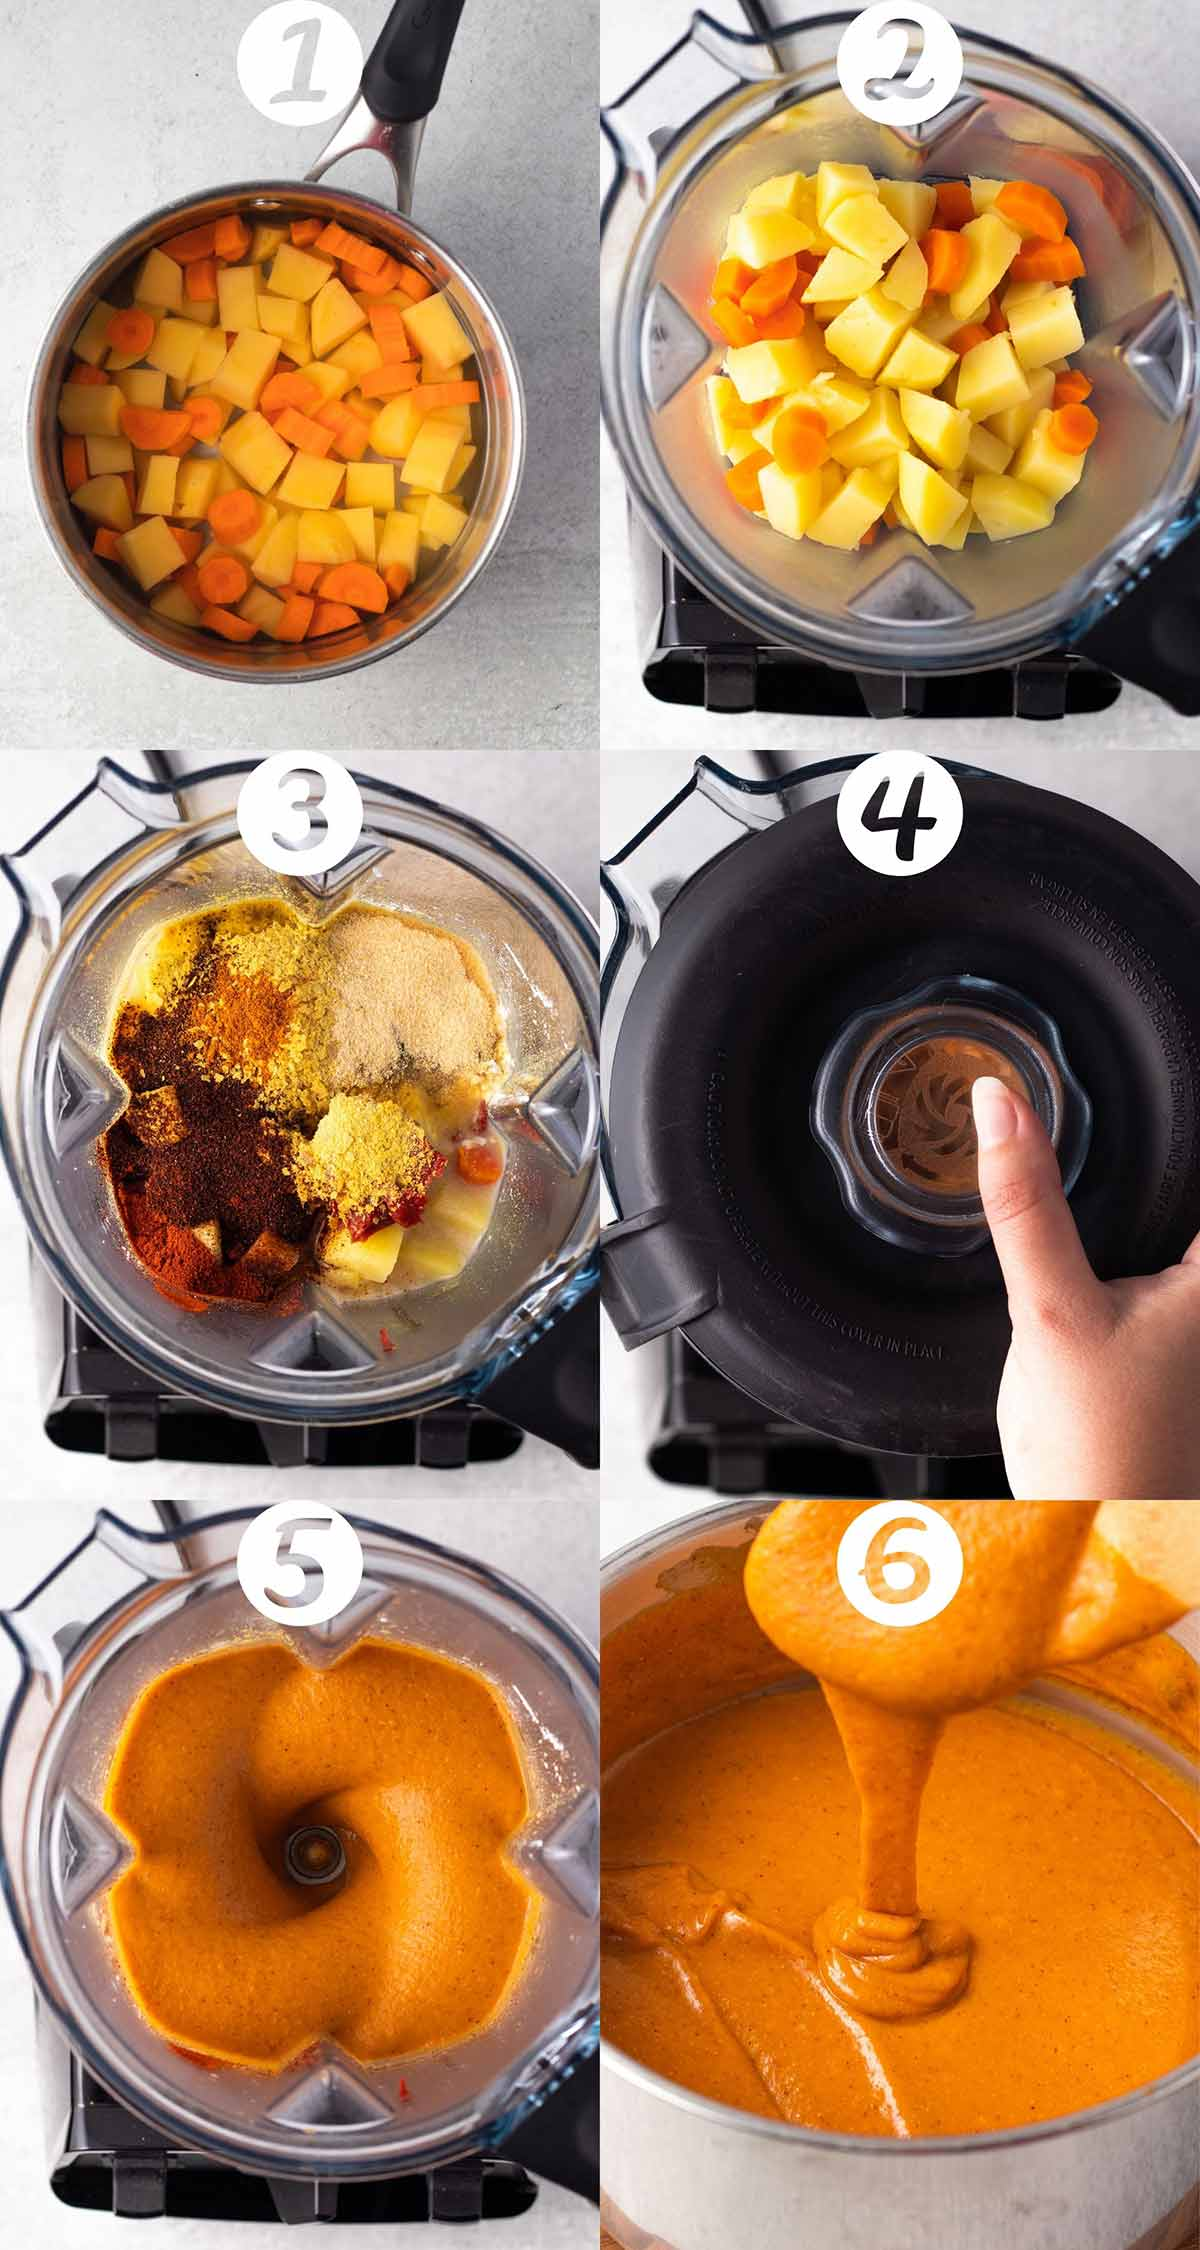 A step-by-step collage. 1) Cut up potatoes and carrots in a pot with water ready to boil. 2) Potatoes and carrots added into a blender. 3) The remaining ingredients added in. 4) The top placed on the blender ready to blend. 5) Nacho cheese mid-blend. 6) Cheese in a pot, thickened.